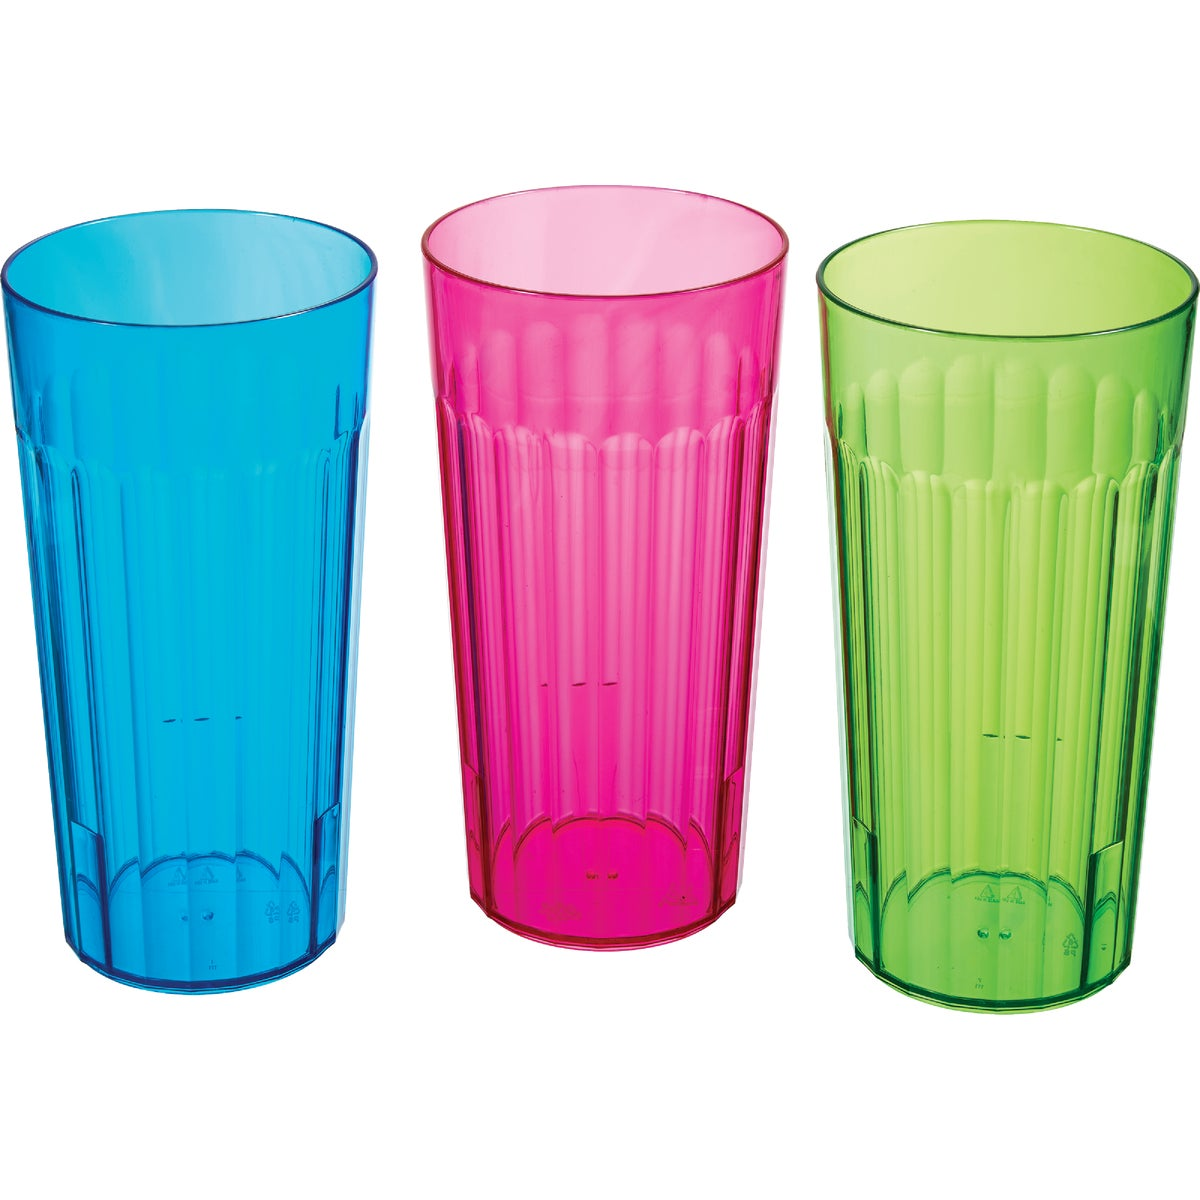 30OZ RAINBOW TUMBLER - 00111 by Arrow Plastic Mfg Co